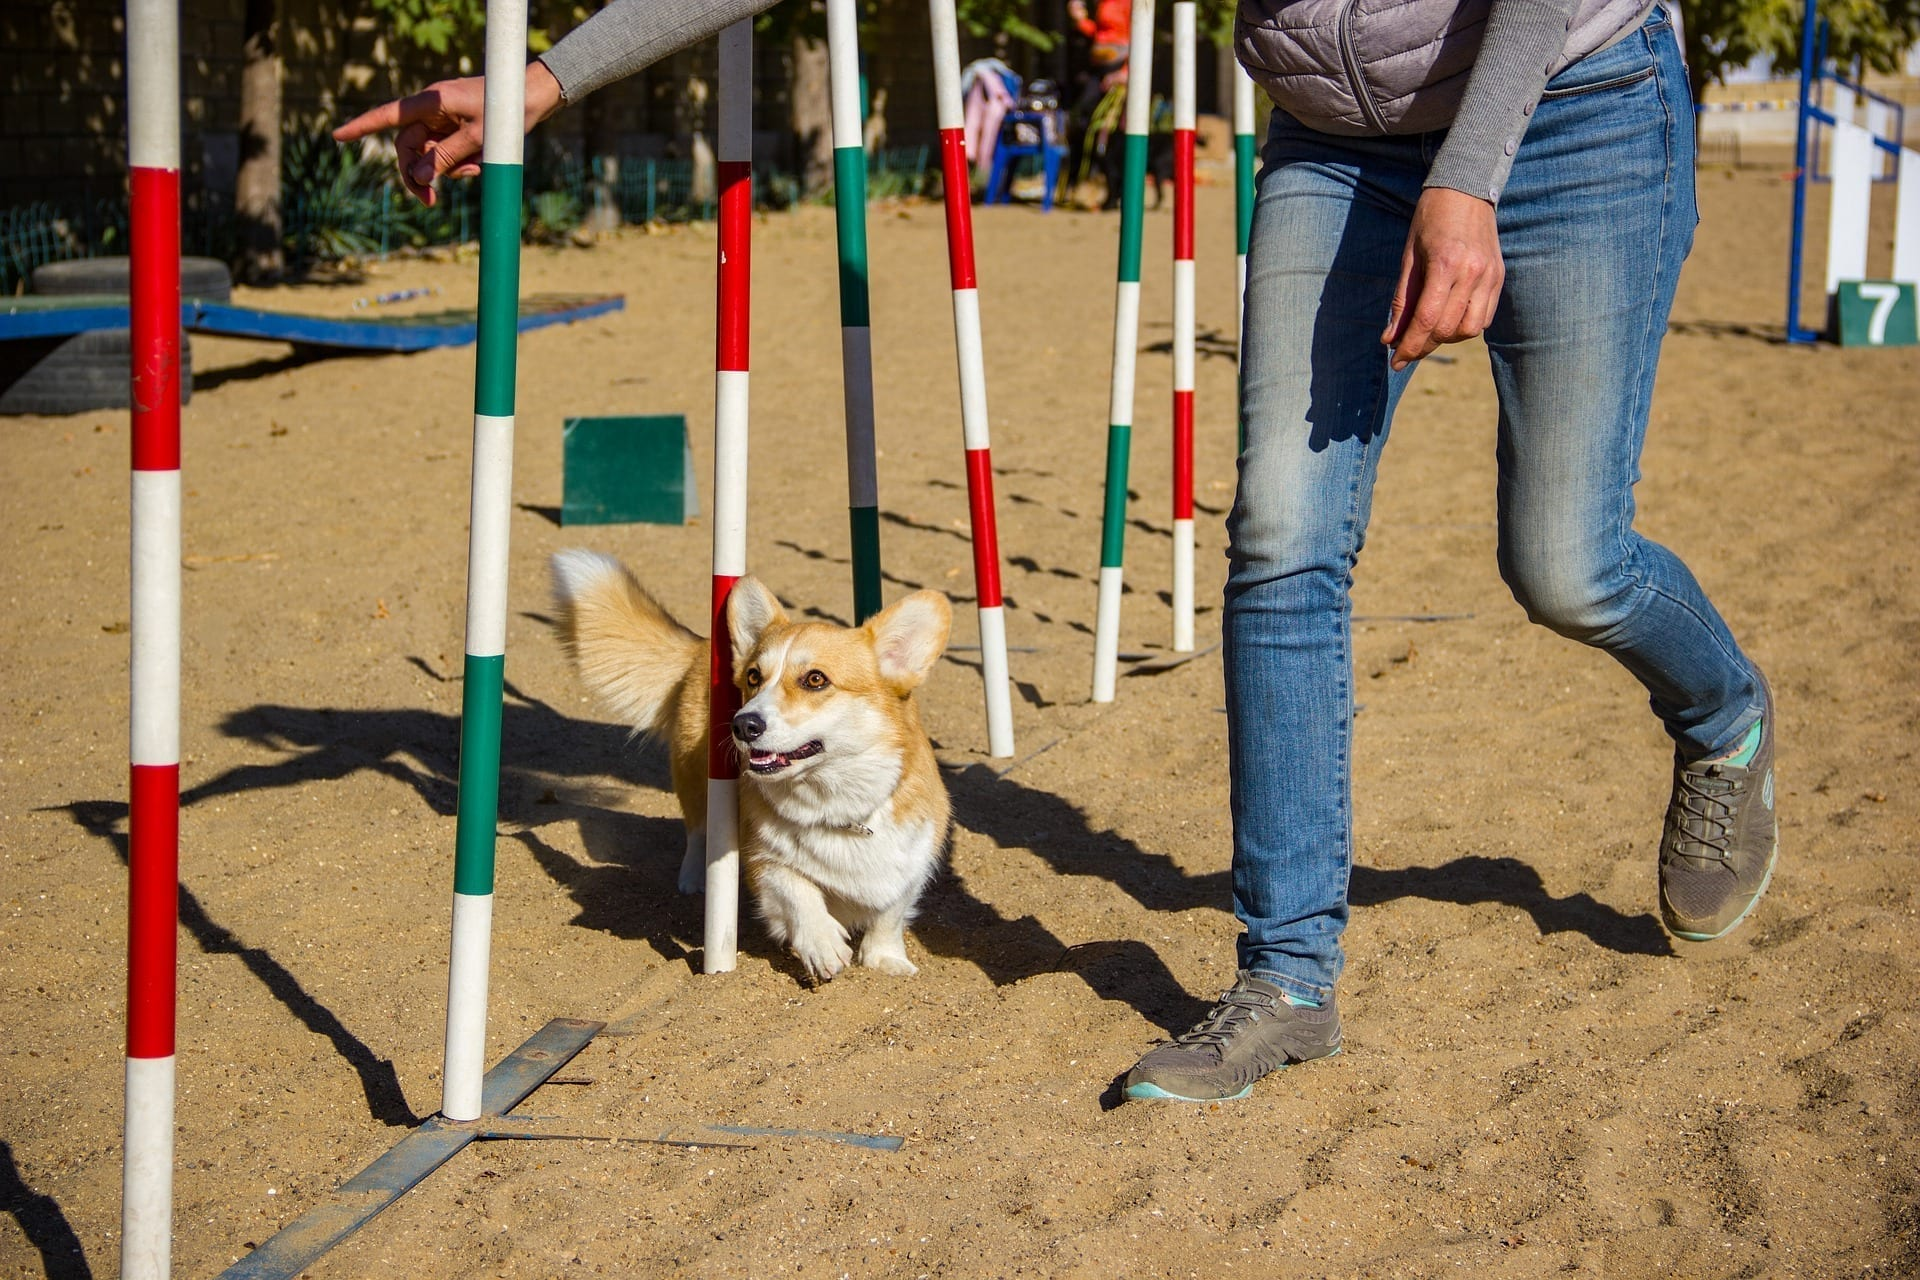 Pembroke Welsh Corgi negotiates weave poles that are one of the standard dog agility course obstacles.